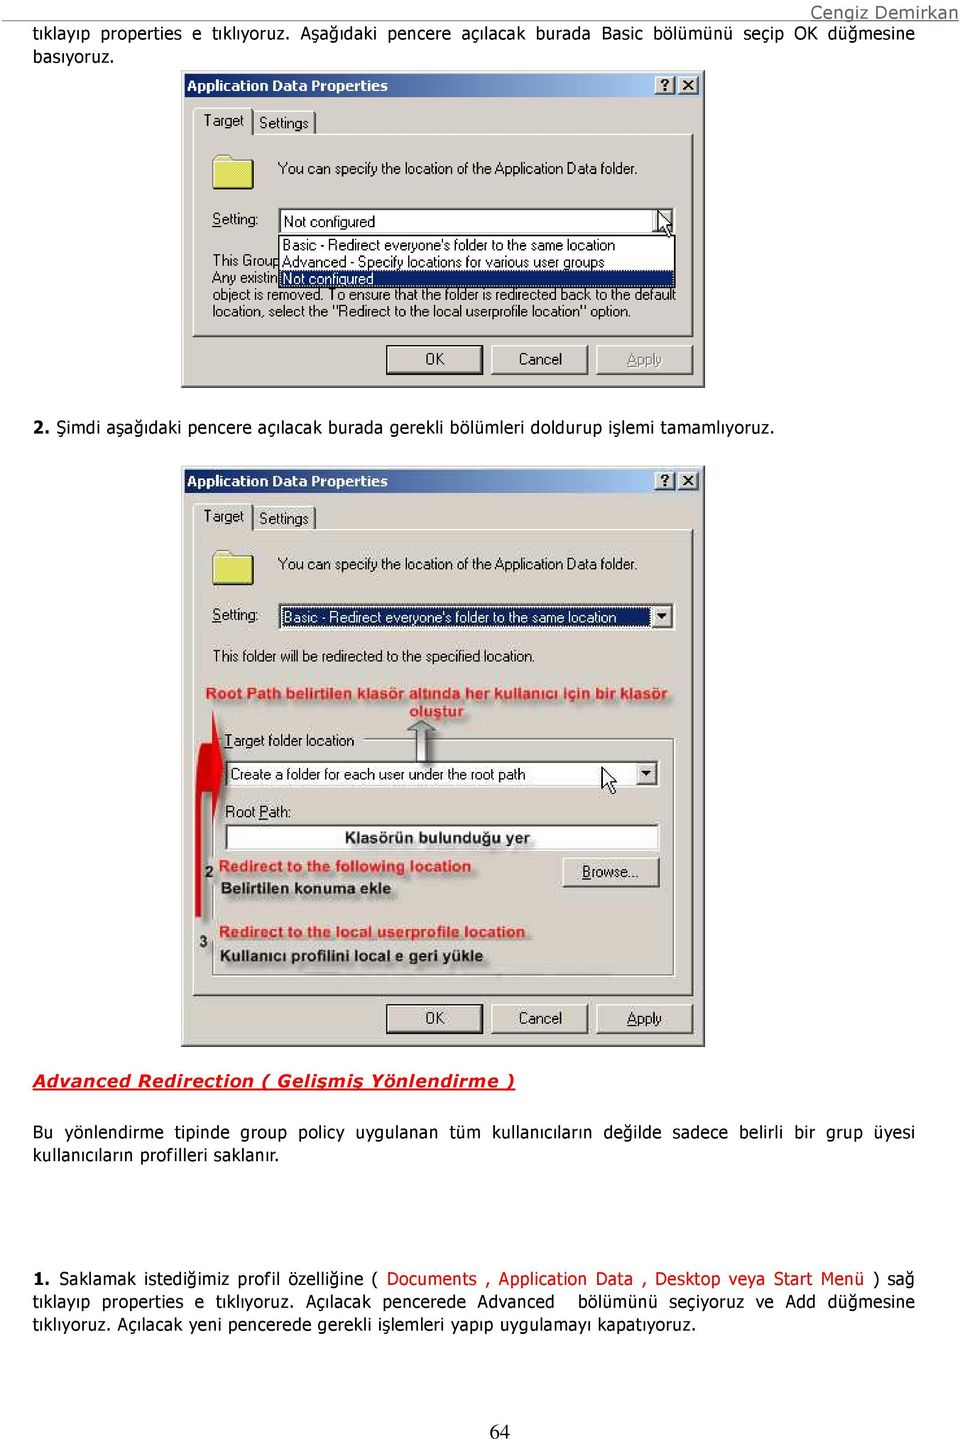 Advanced Redirection ( Gelişmiş Yönlendirme ) Bu yönlendirme tipinde group policy uygulanan tüm kullanıcıların değilde sadece belirli bir grup üyesi kullanıcıların